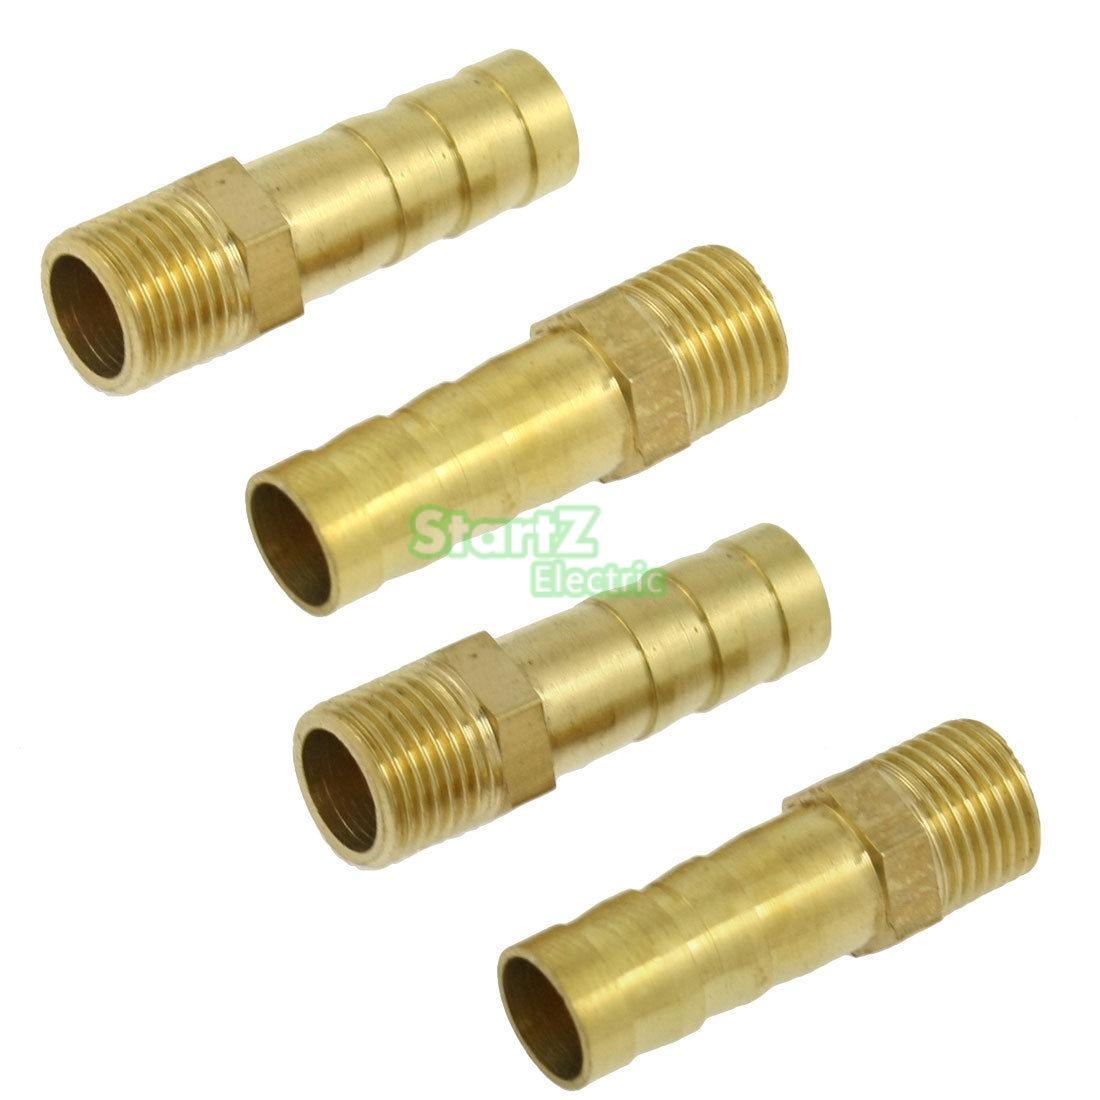 Pcs pt male to mm air hose barb pipe barbed